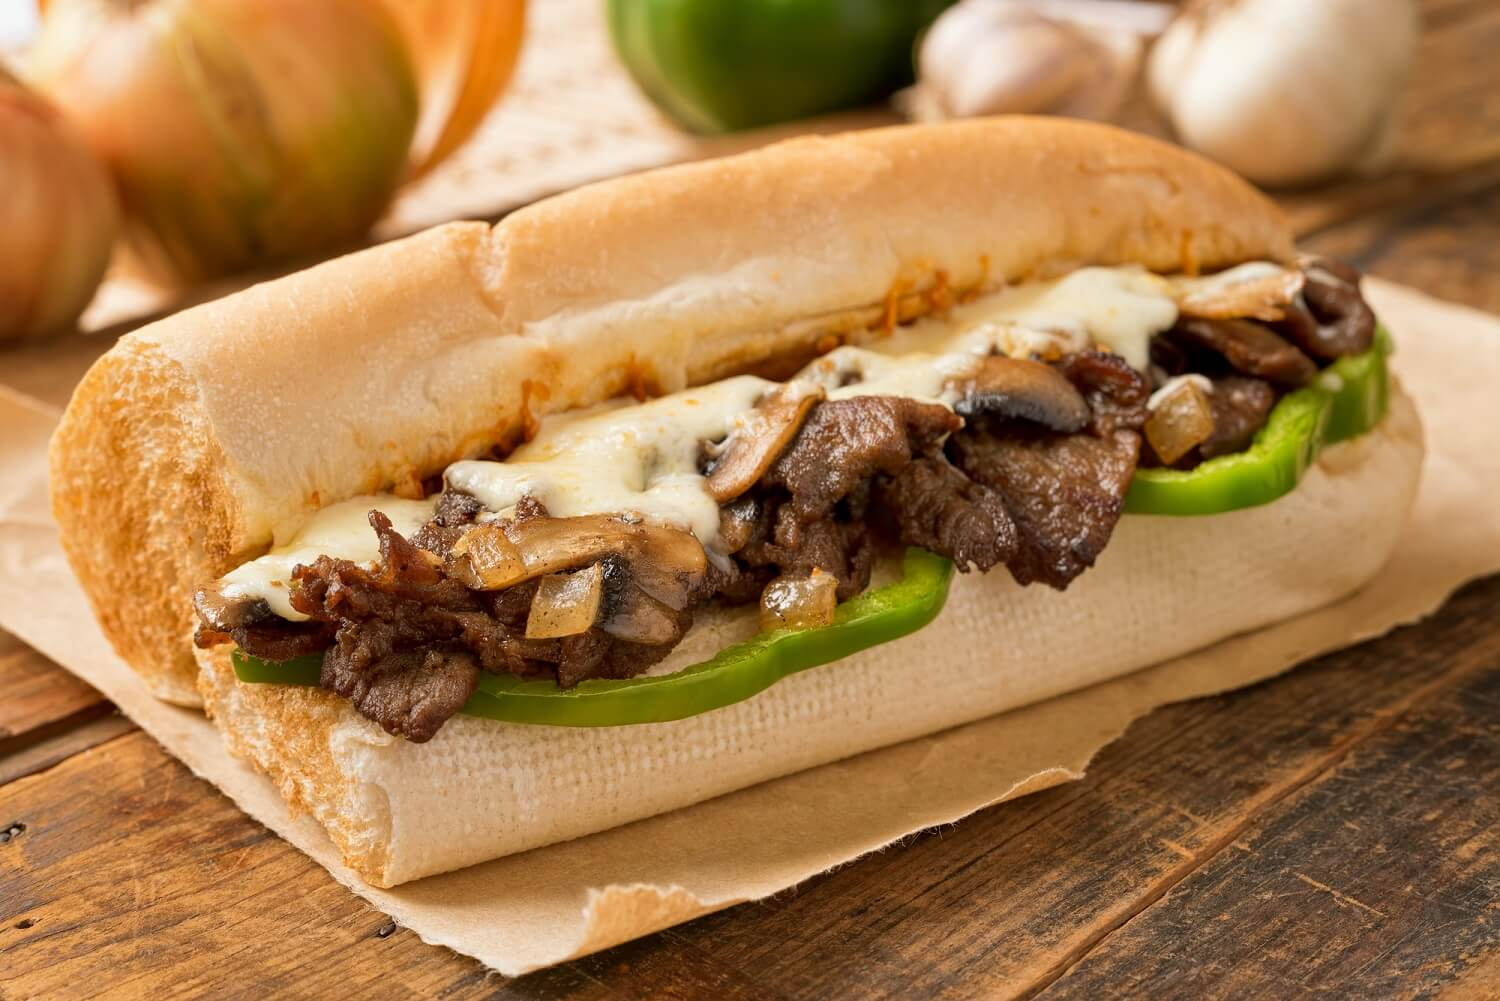 The Philly cheesesteak is an iconic American food and one of the best sandwiches in the world.